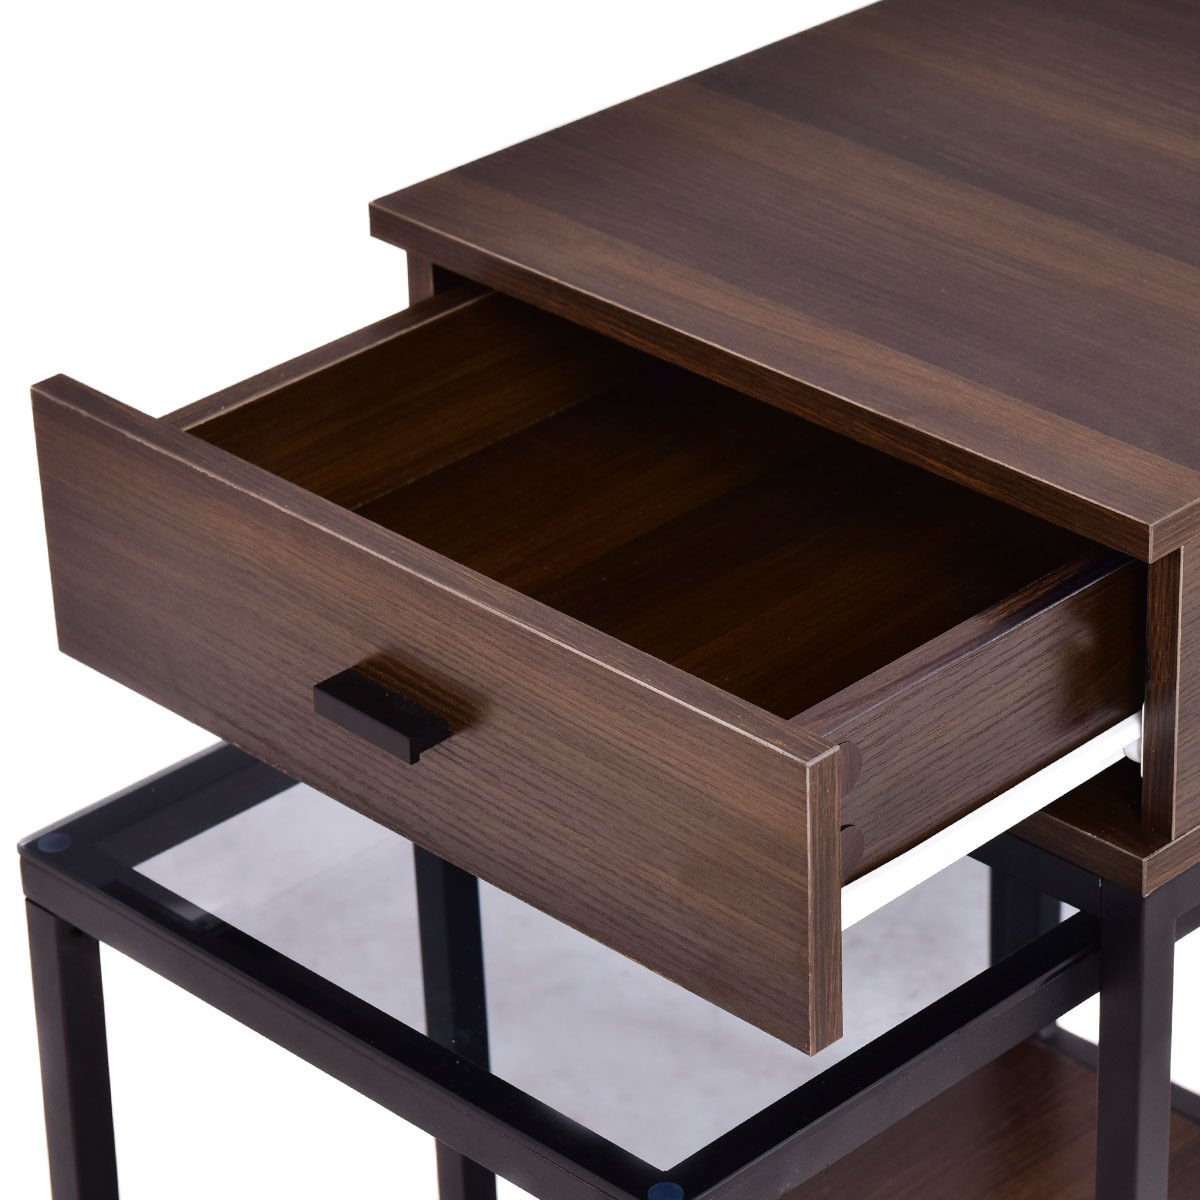 Nesting Table Coffee Table Side Table End Table Metal Frame Wood Glass Top 2PCS by White Bear & Brown Rabbit (Image #6)